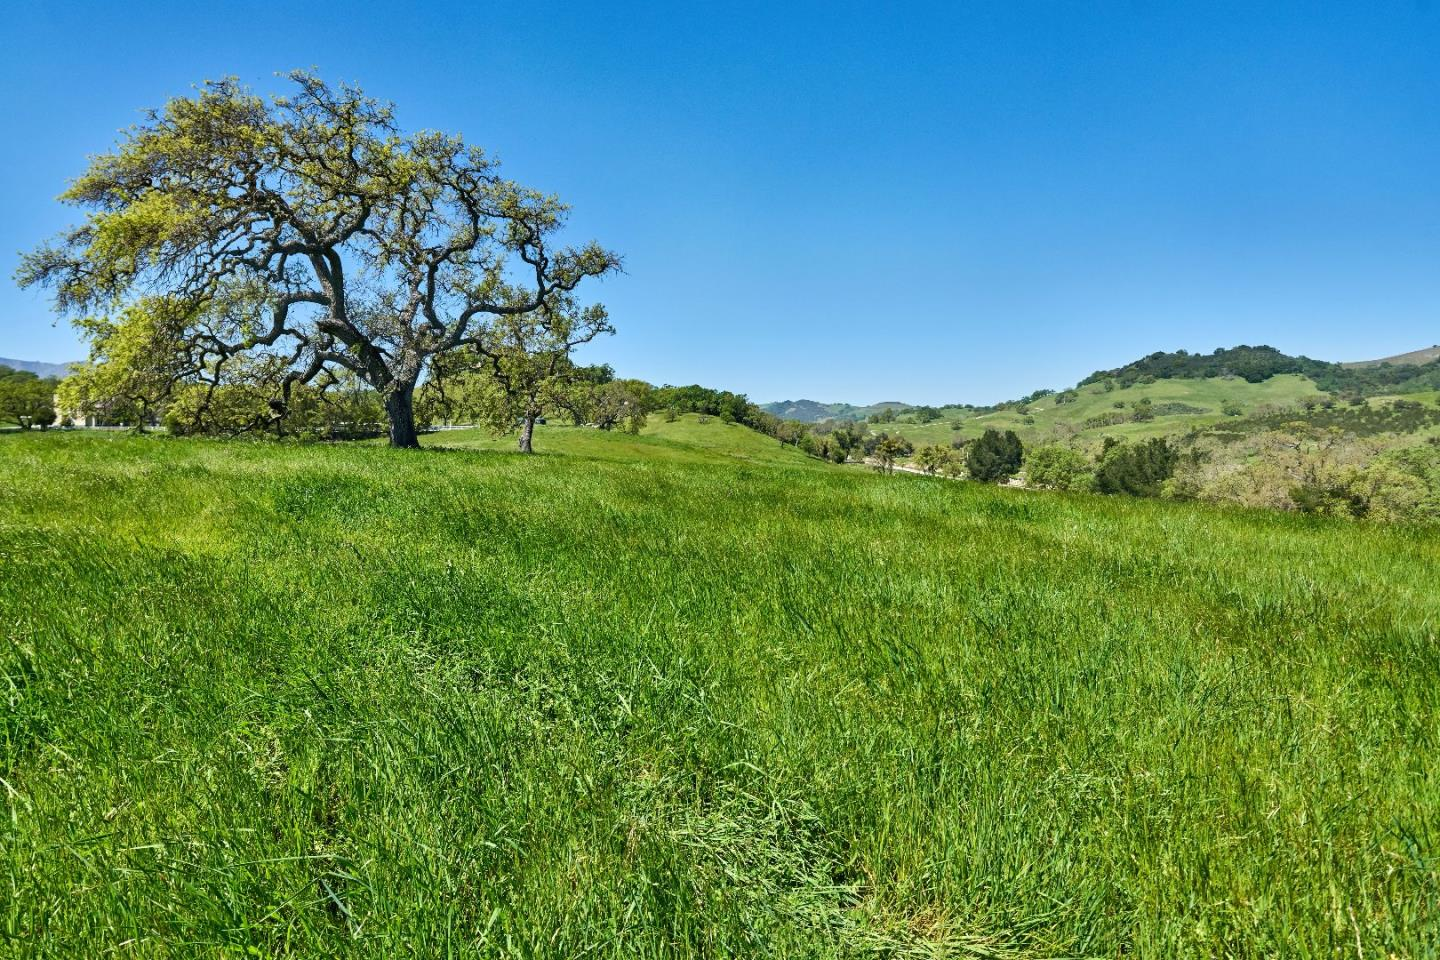 Additional photo for property listing at 17385 Uvas Road  Morgan Hill, California 95037 United States